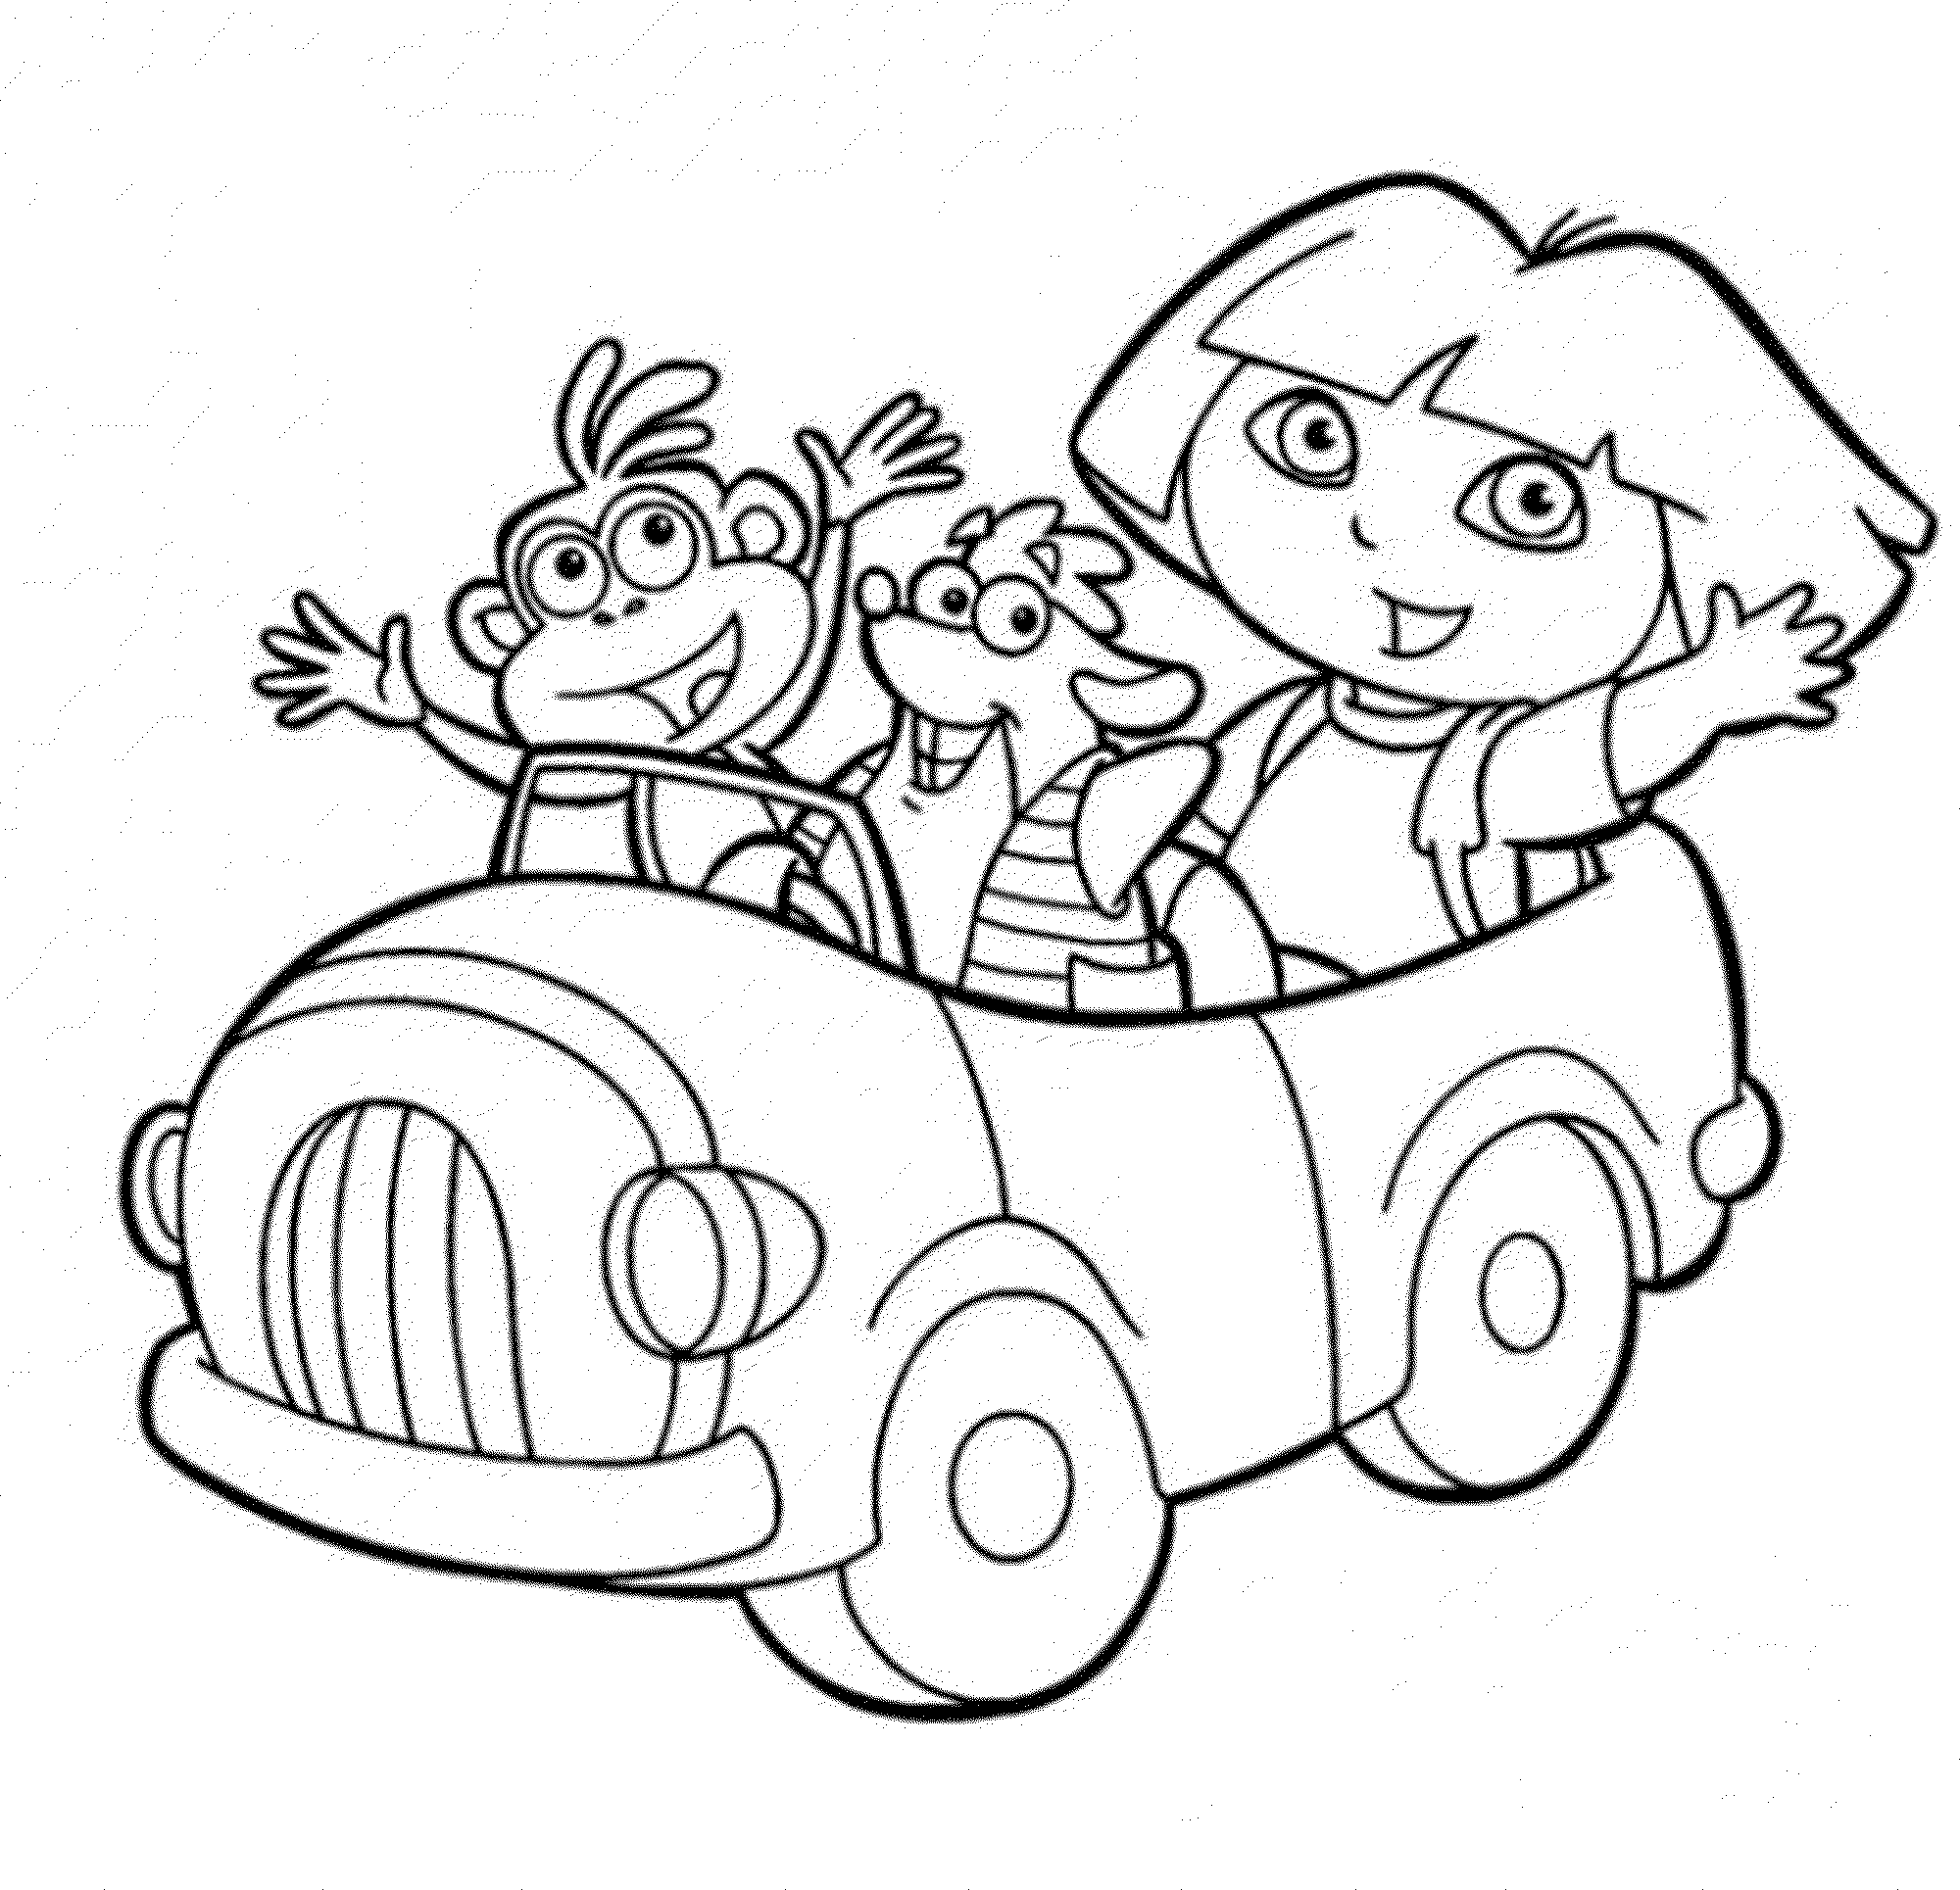 printable dora coloring pages print download dora coloring pages to learn new things dora printable coloring pages